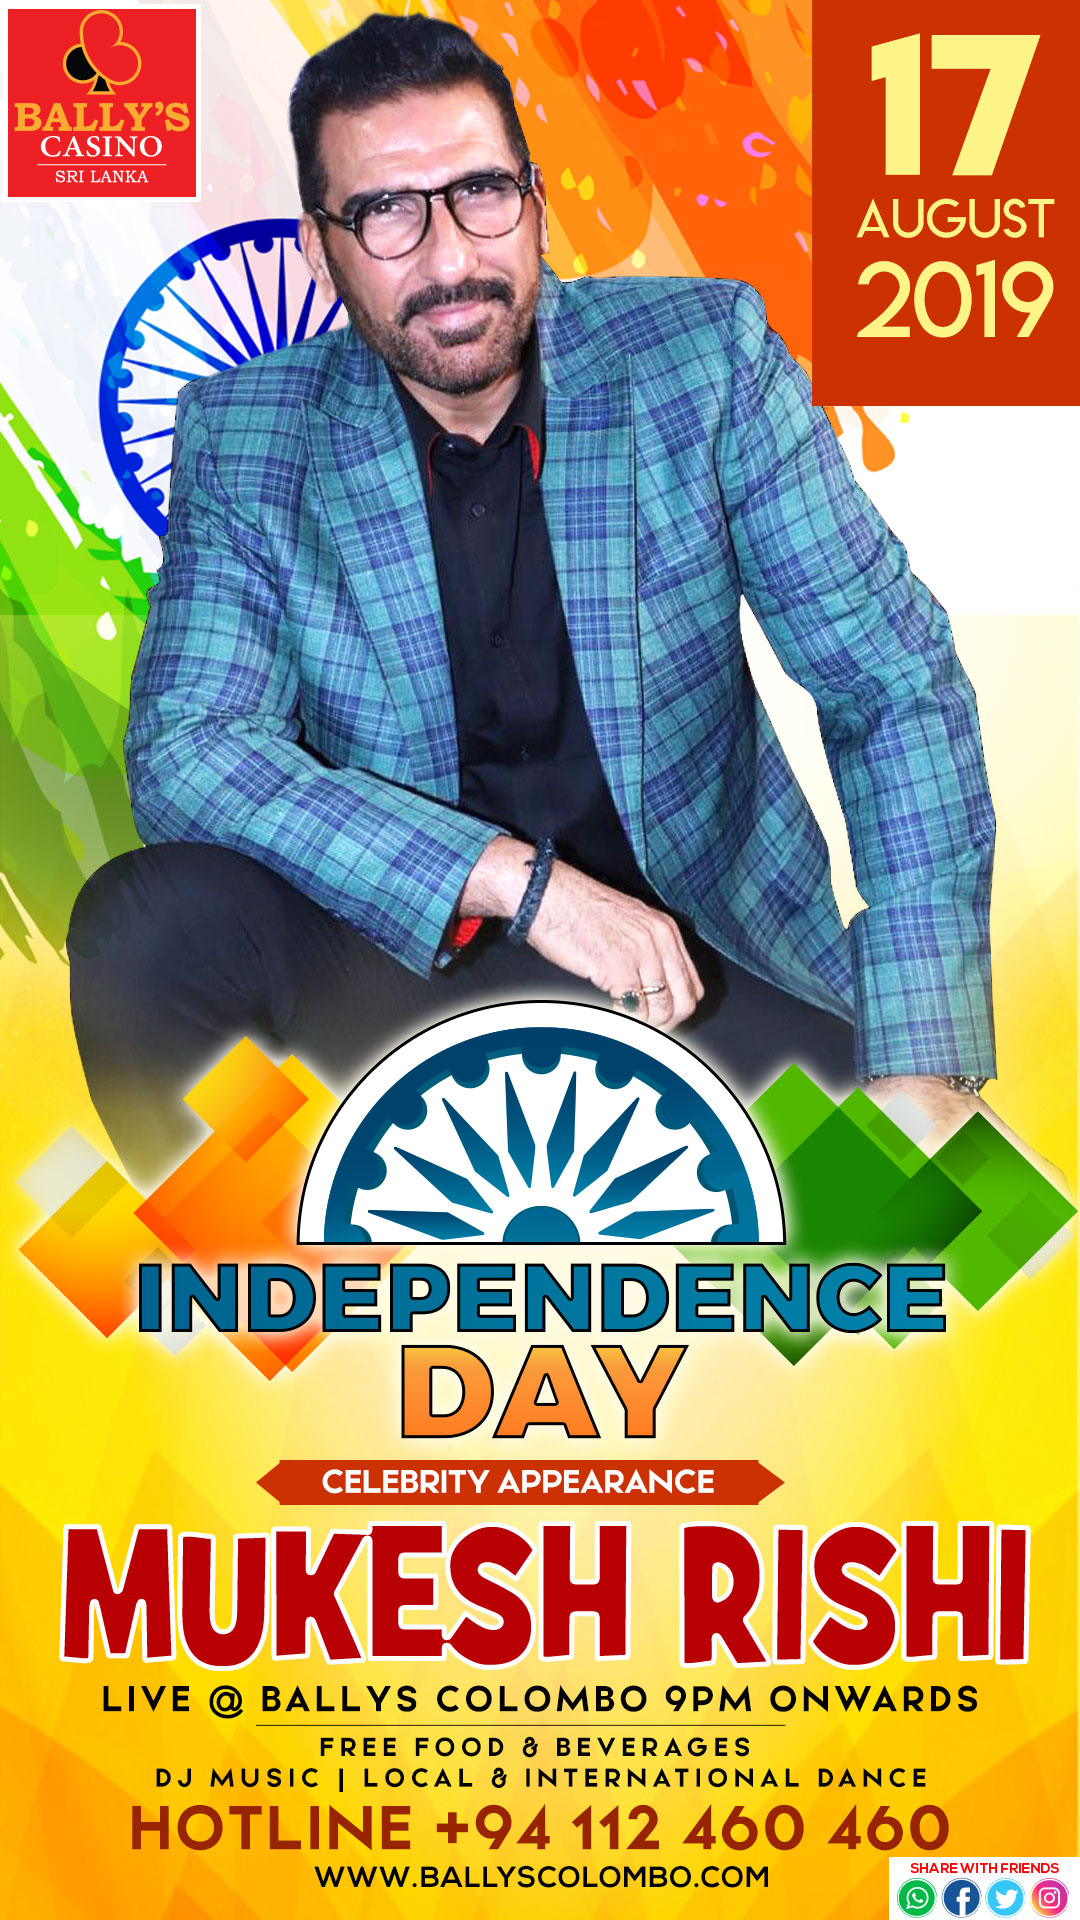 independence-day-mukesh-rishi